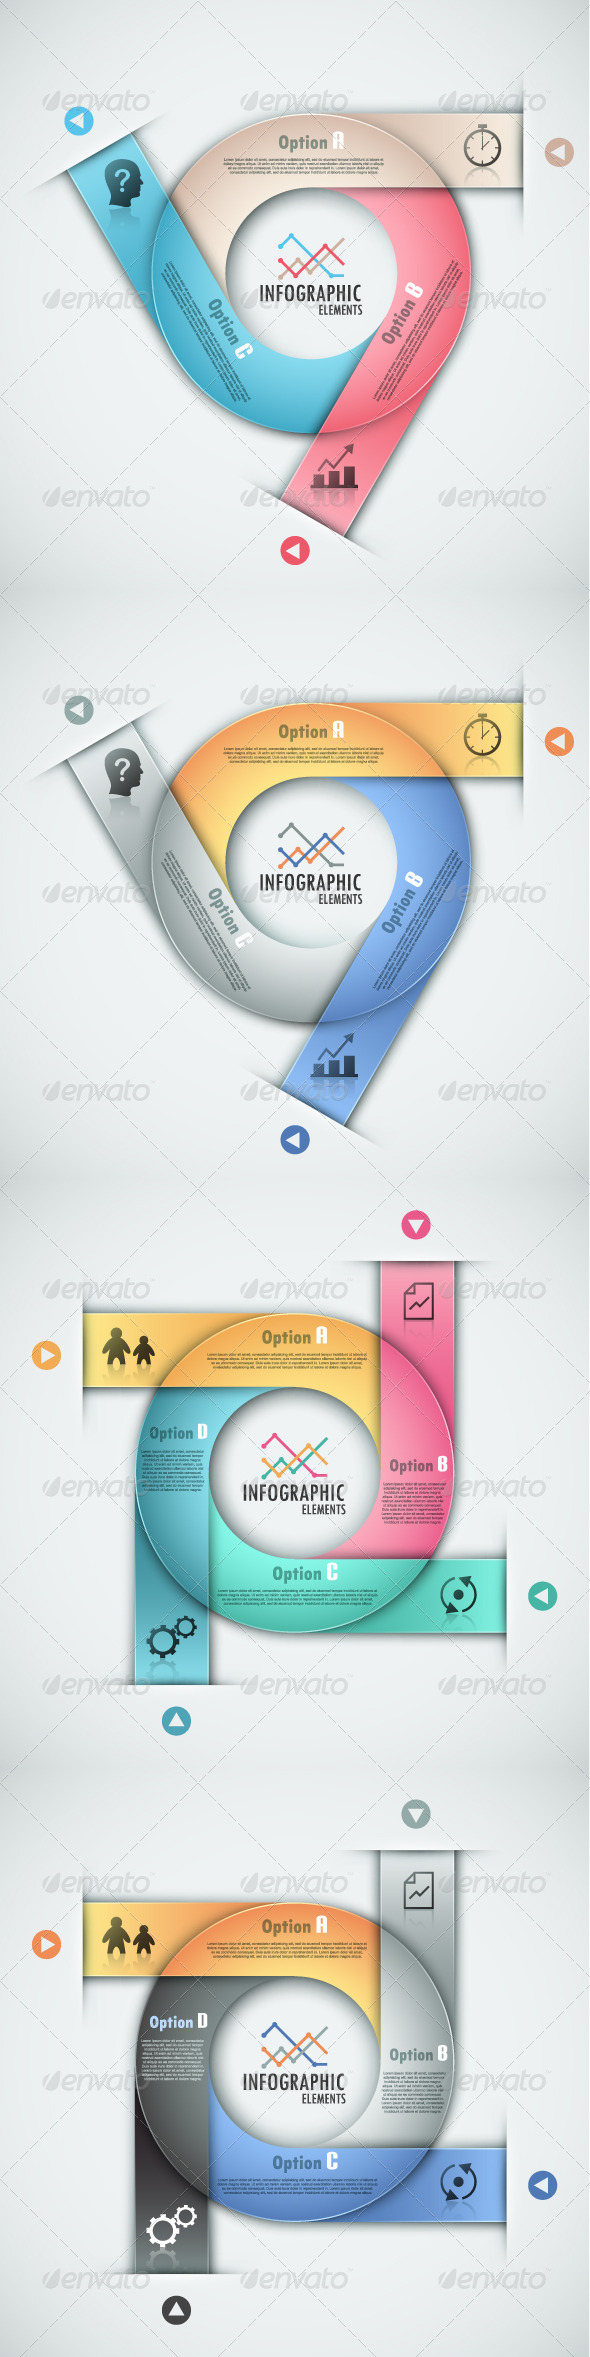 GraphicRiver Modern Infographic Options Banner 4 Versions 7715972